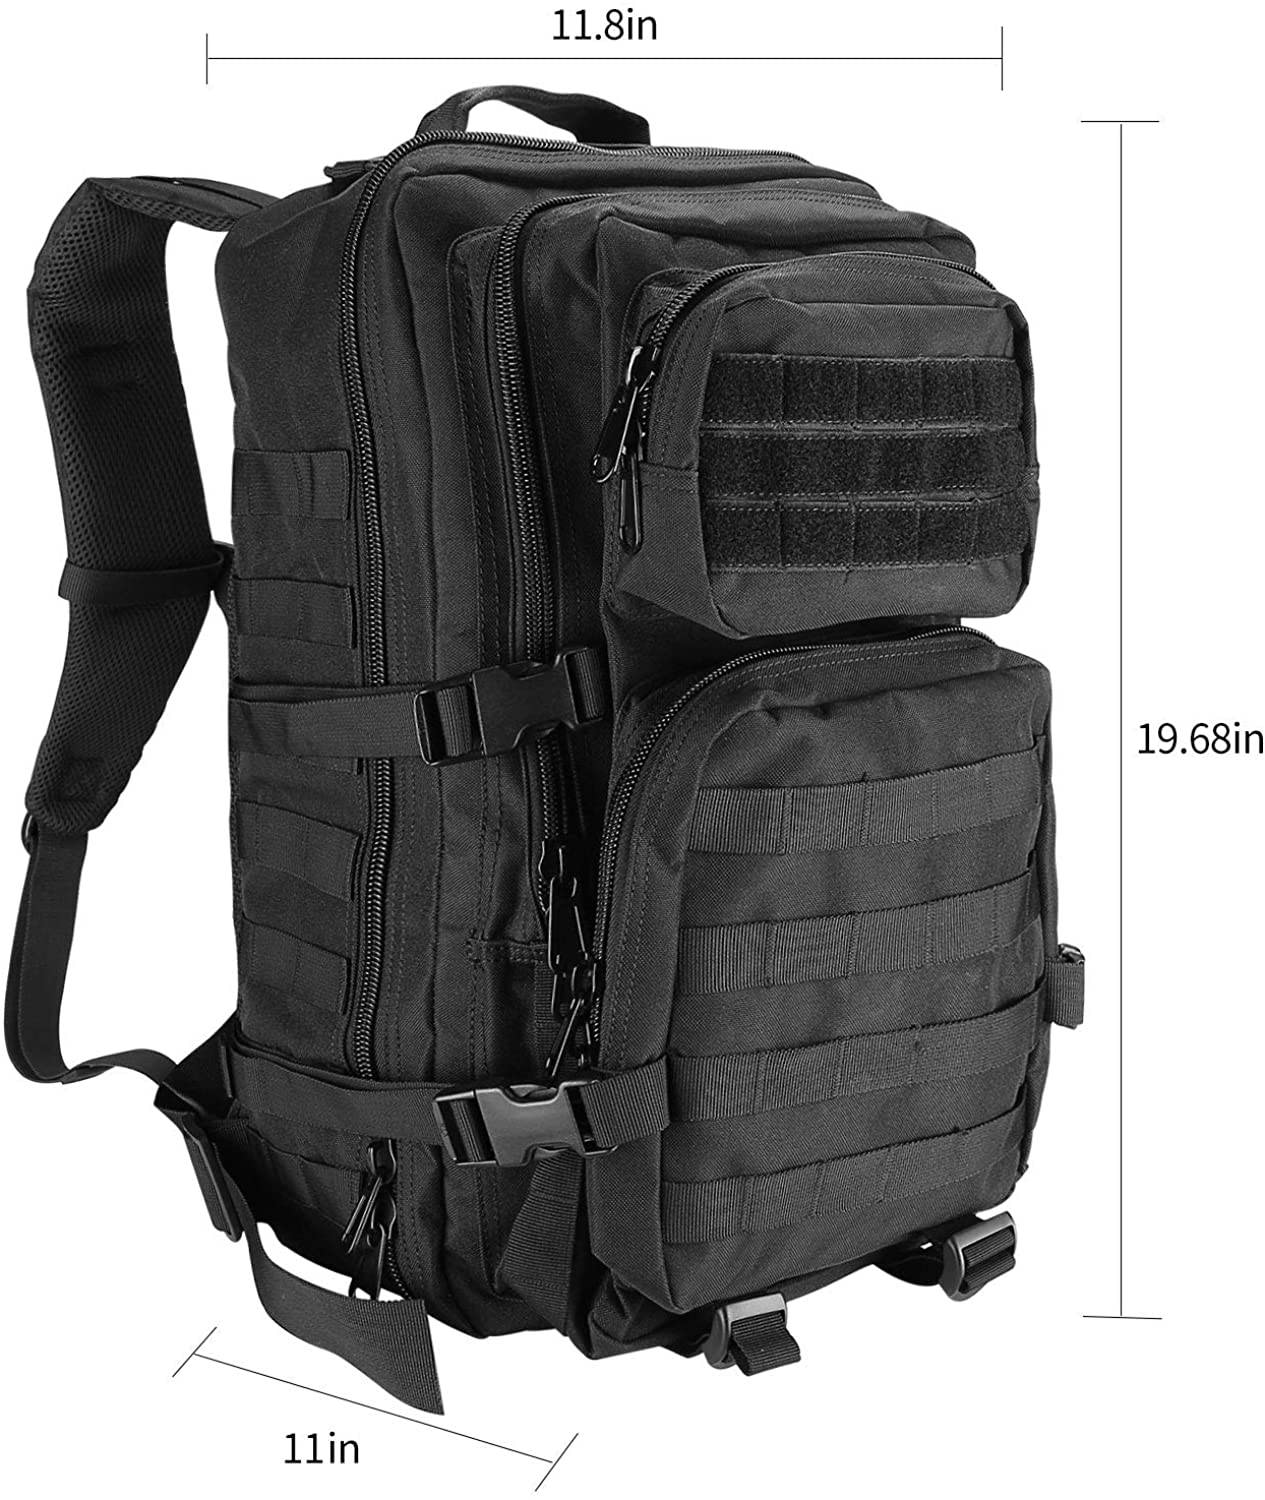 | tactical backpack brands |  tactical backpack amazon |  tactical backpack made in usa |  tactical backpack for guns |  tactical backpack accessories |  tactical backpack near me |  tactical backpack patches |  tactical backpack small |  tactical backpack academy |  tactical backpack ar pistol |  tactical backpack armor |  tactical backpack afterpay |  tactical backpack australia |  tactical backpack army |  packing a tactical backpack |  high and tactical backpack |  what is a tactical backpack |  how to clean a tactical backpack |  how to make a tactical backpack |  what is the best tactical backpack |  what should be in a tactical go bag |  tactical backpack black |  tactical backpack bulletproof |  tactical backpack body armor |  tactical backpack baby |  tactical backpack big 5 |  tactical backpack bass pro |  tactical backpack best |  b-tactical |  tactical backpack cooler |  tactical backpack companies |  tactical backpack coyote brown |  tactical backpack cheap |  tactical backpack camo |  tactical backpack clips |  tactical backpack carry on |  tactical backpack condor |  s.o.c tactical backpack |  tactical backpack dayz |  tactical backpack diaper bag |  tactical backpack drago |  tactical backpack definition |  tactical backpack dubai |  tactical backpack dunham's |  tactical backpack desert |  tactical backpack discount |